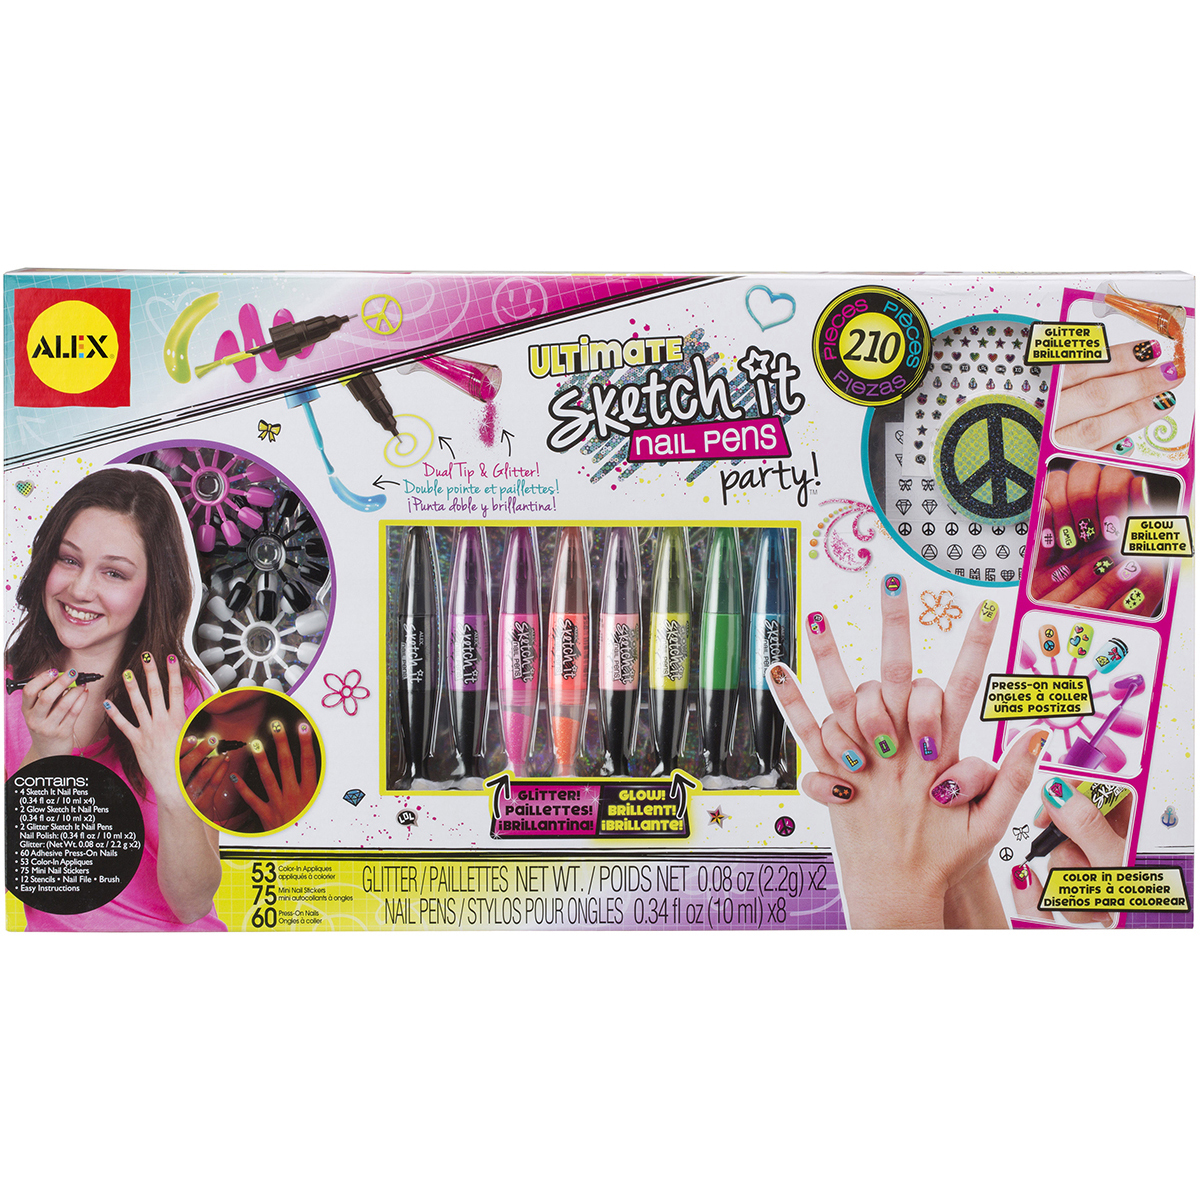 ALEX Toys Spa Fun Ultimate Sketch It Nail Pens Party - Walmart.com